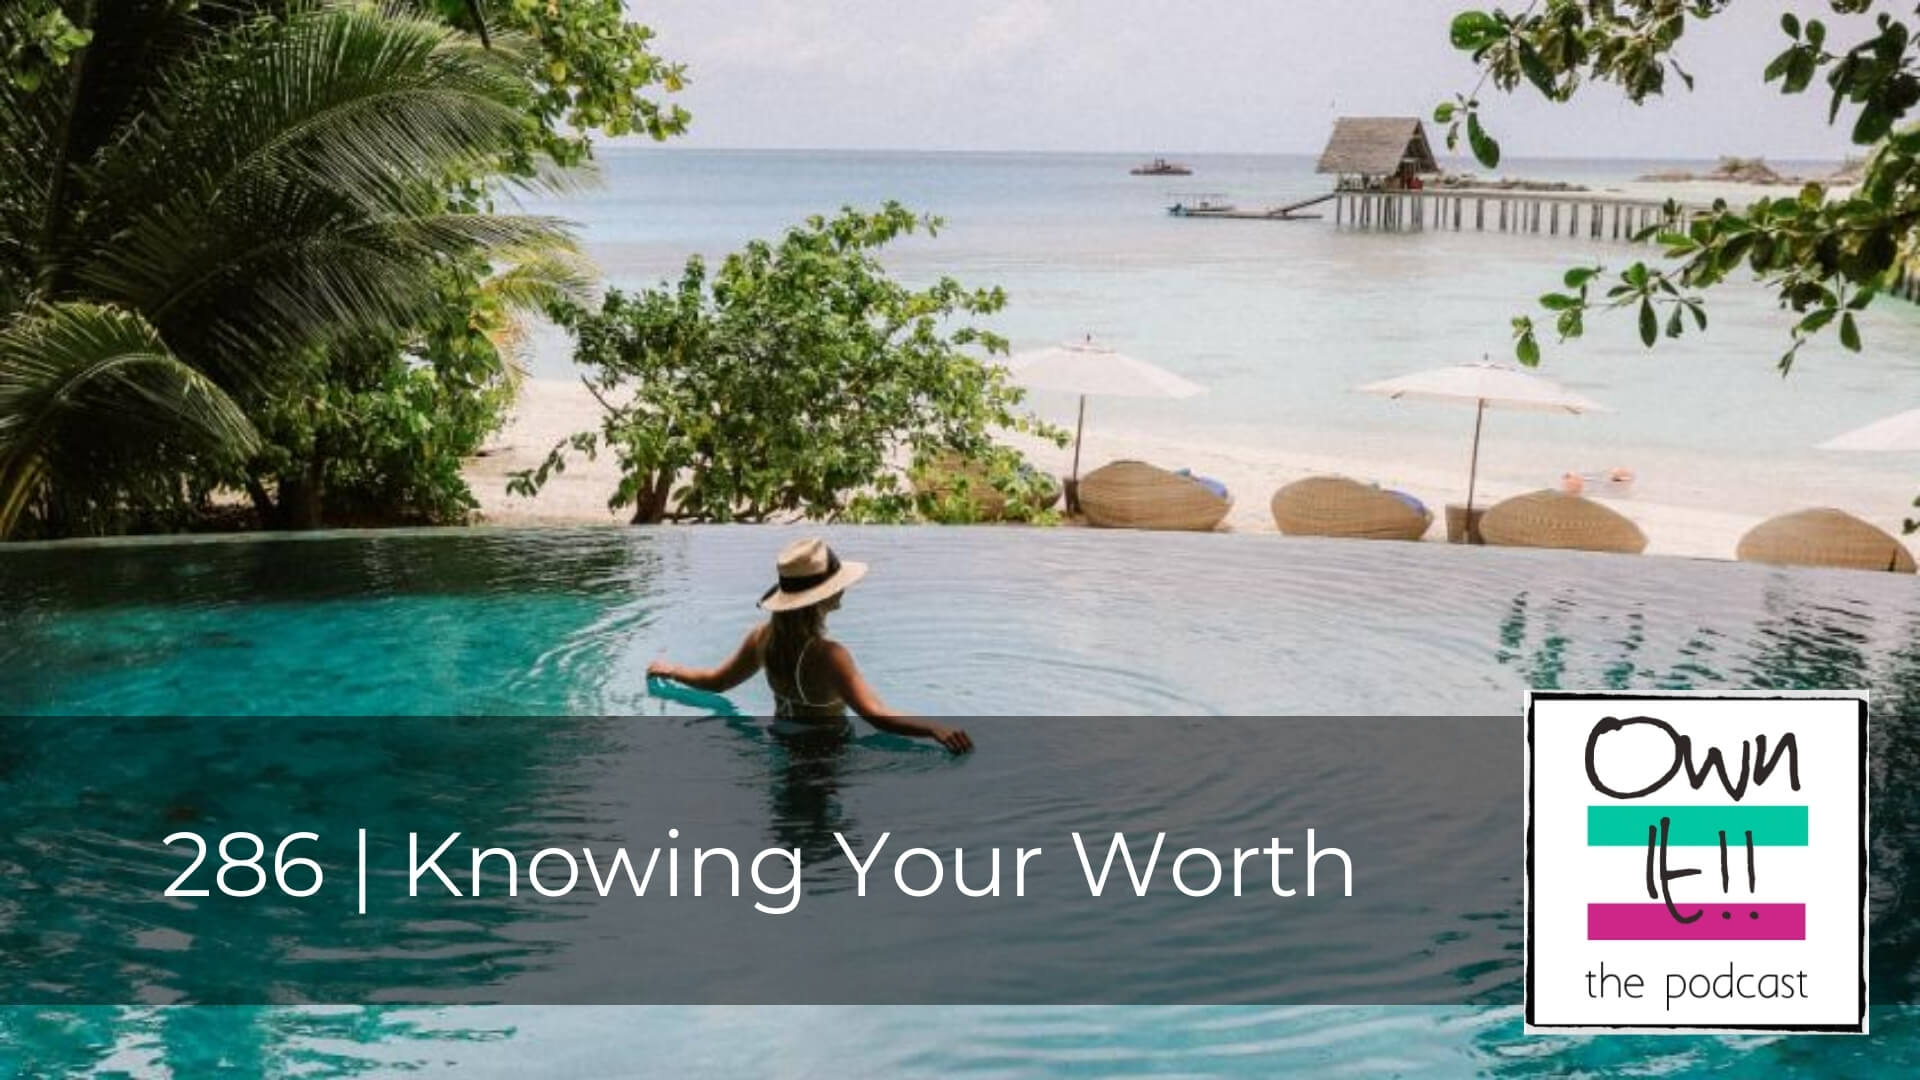 Own It! 286 | Knowing Your Worth